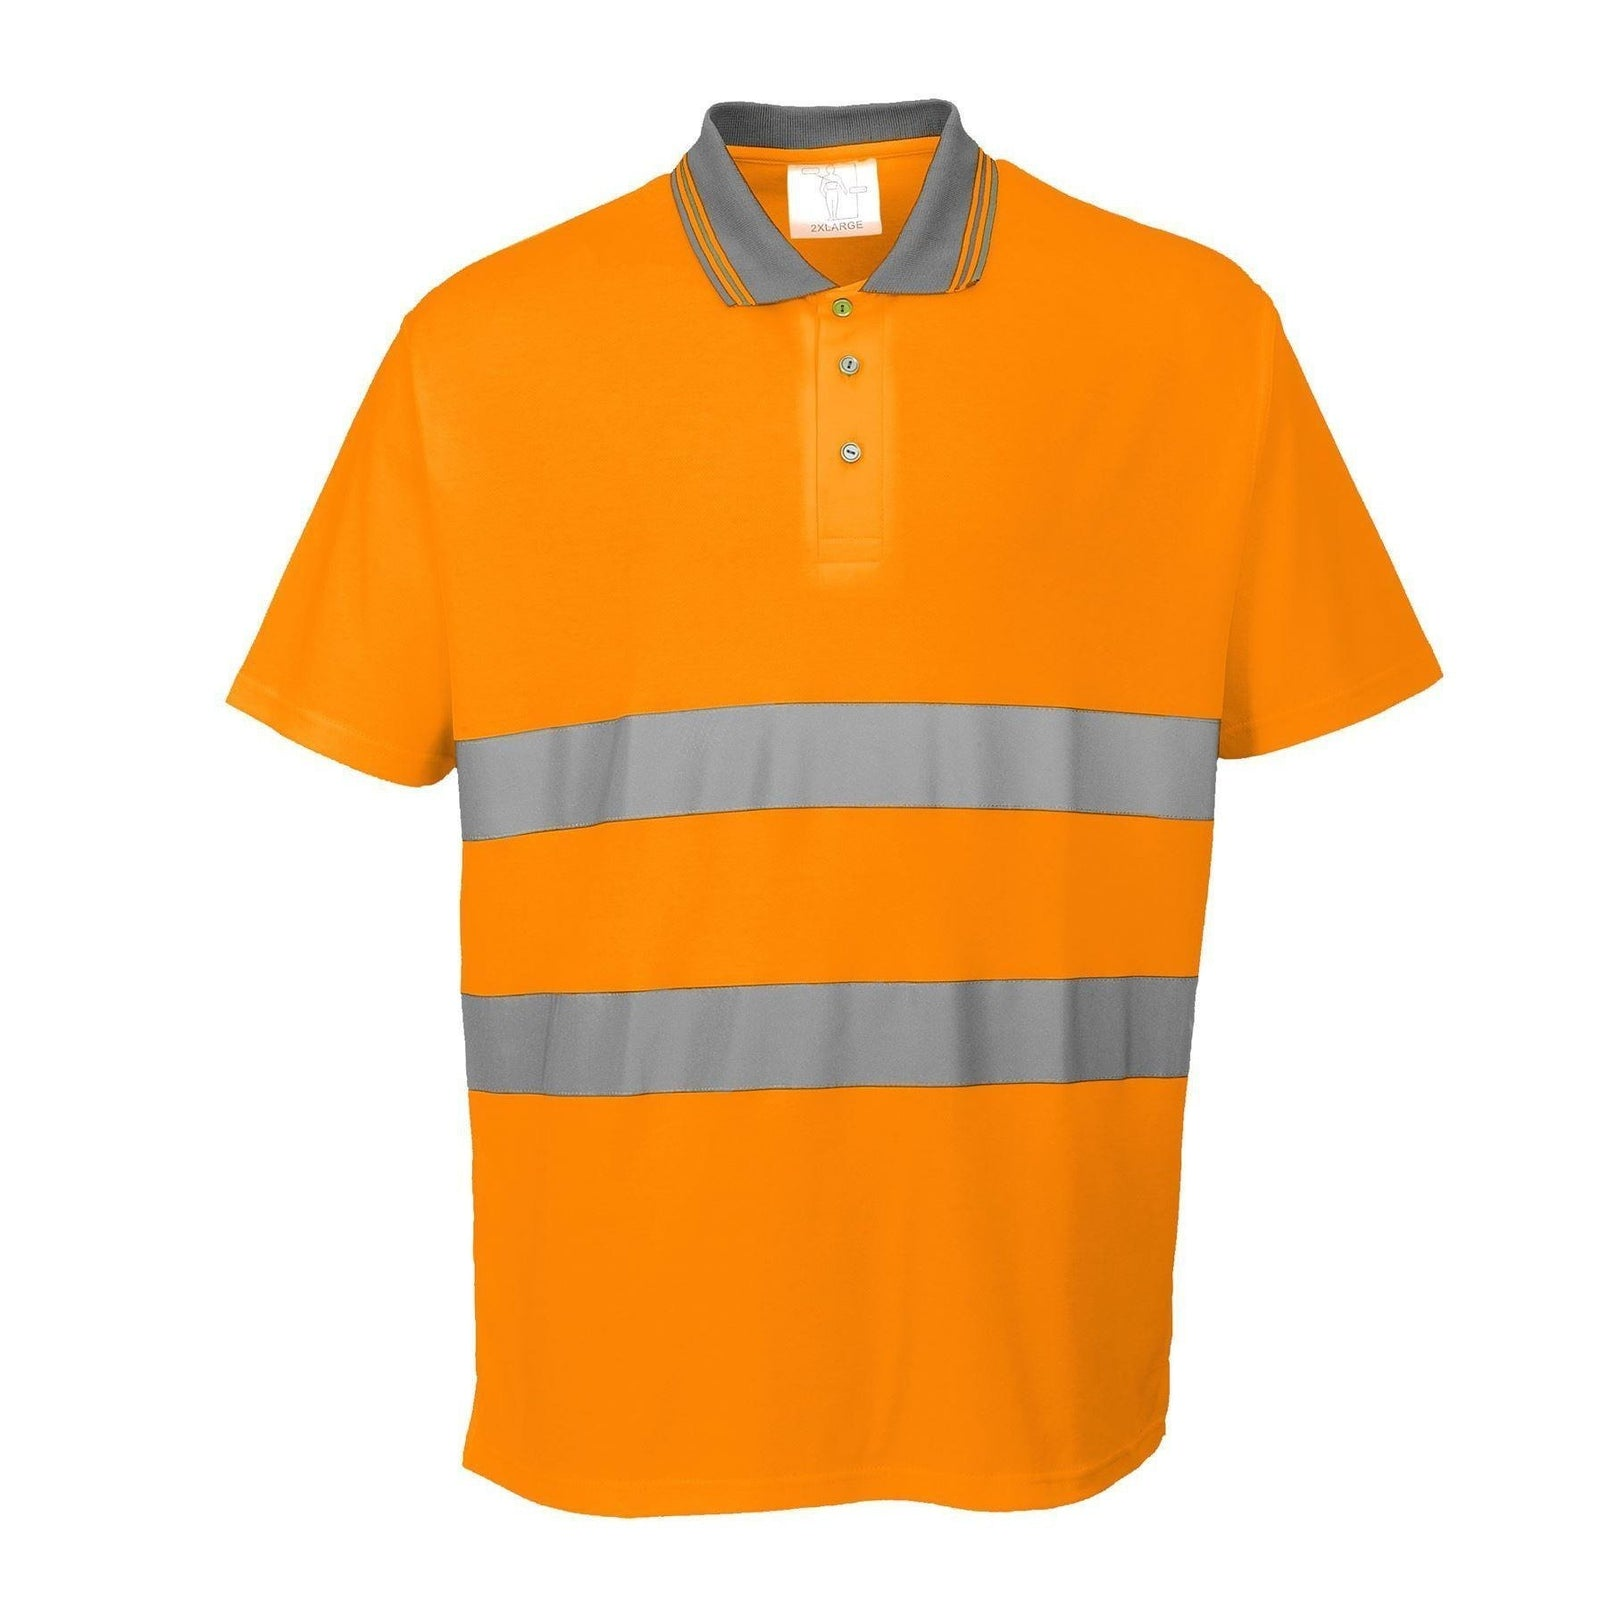 Portwest Cotton Comfort Polo S171 - reid outdoors